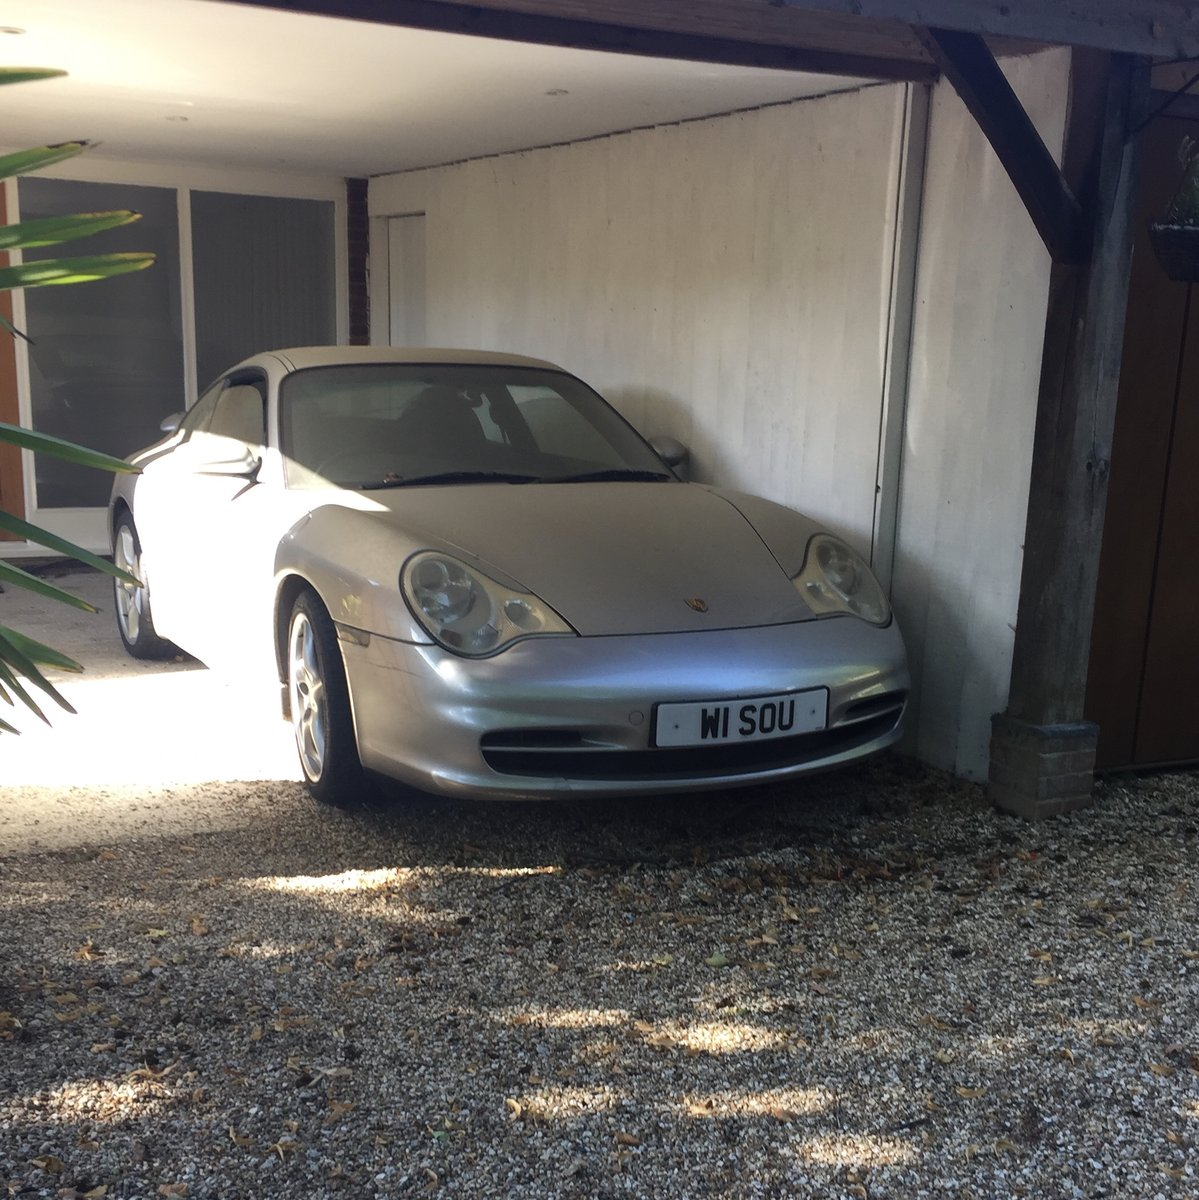 2003 Porsche 911 Carrera 3.6, 2WD, Manual - Project! SOLD (picture 1 of 6)